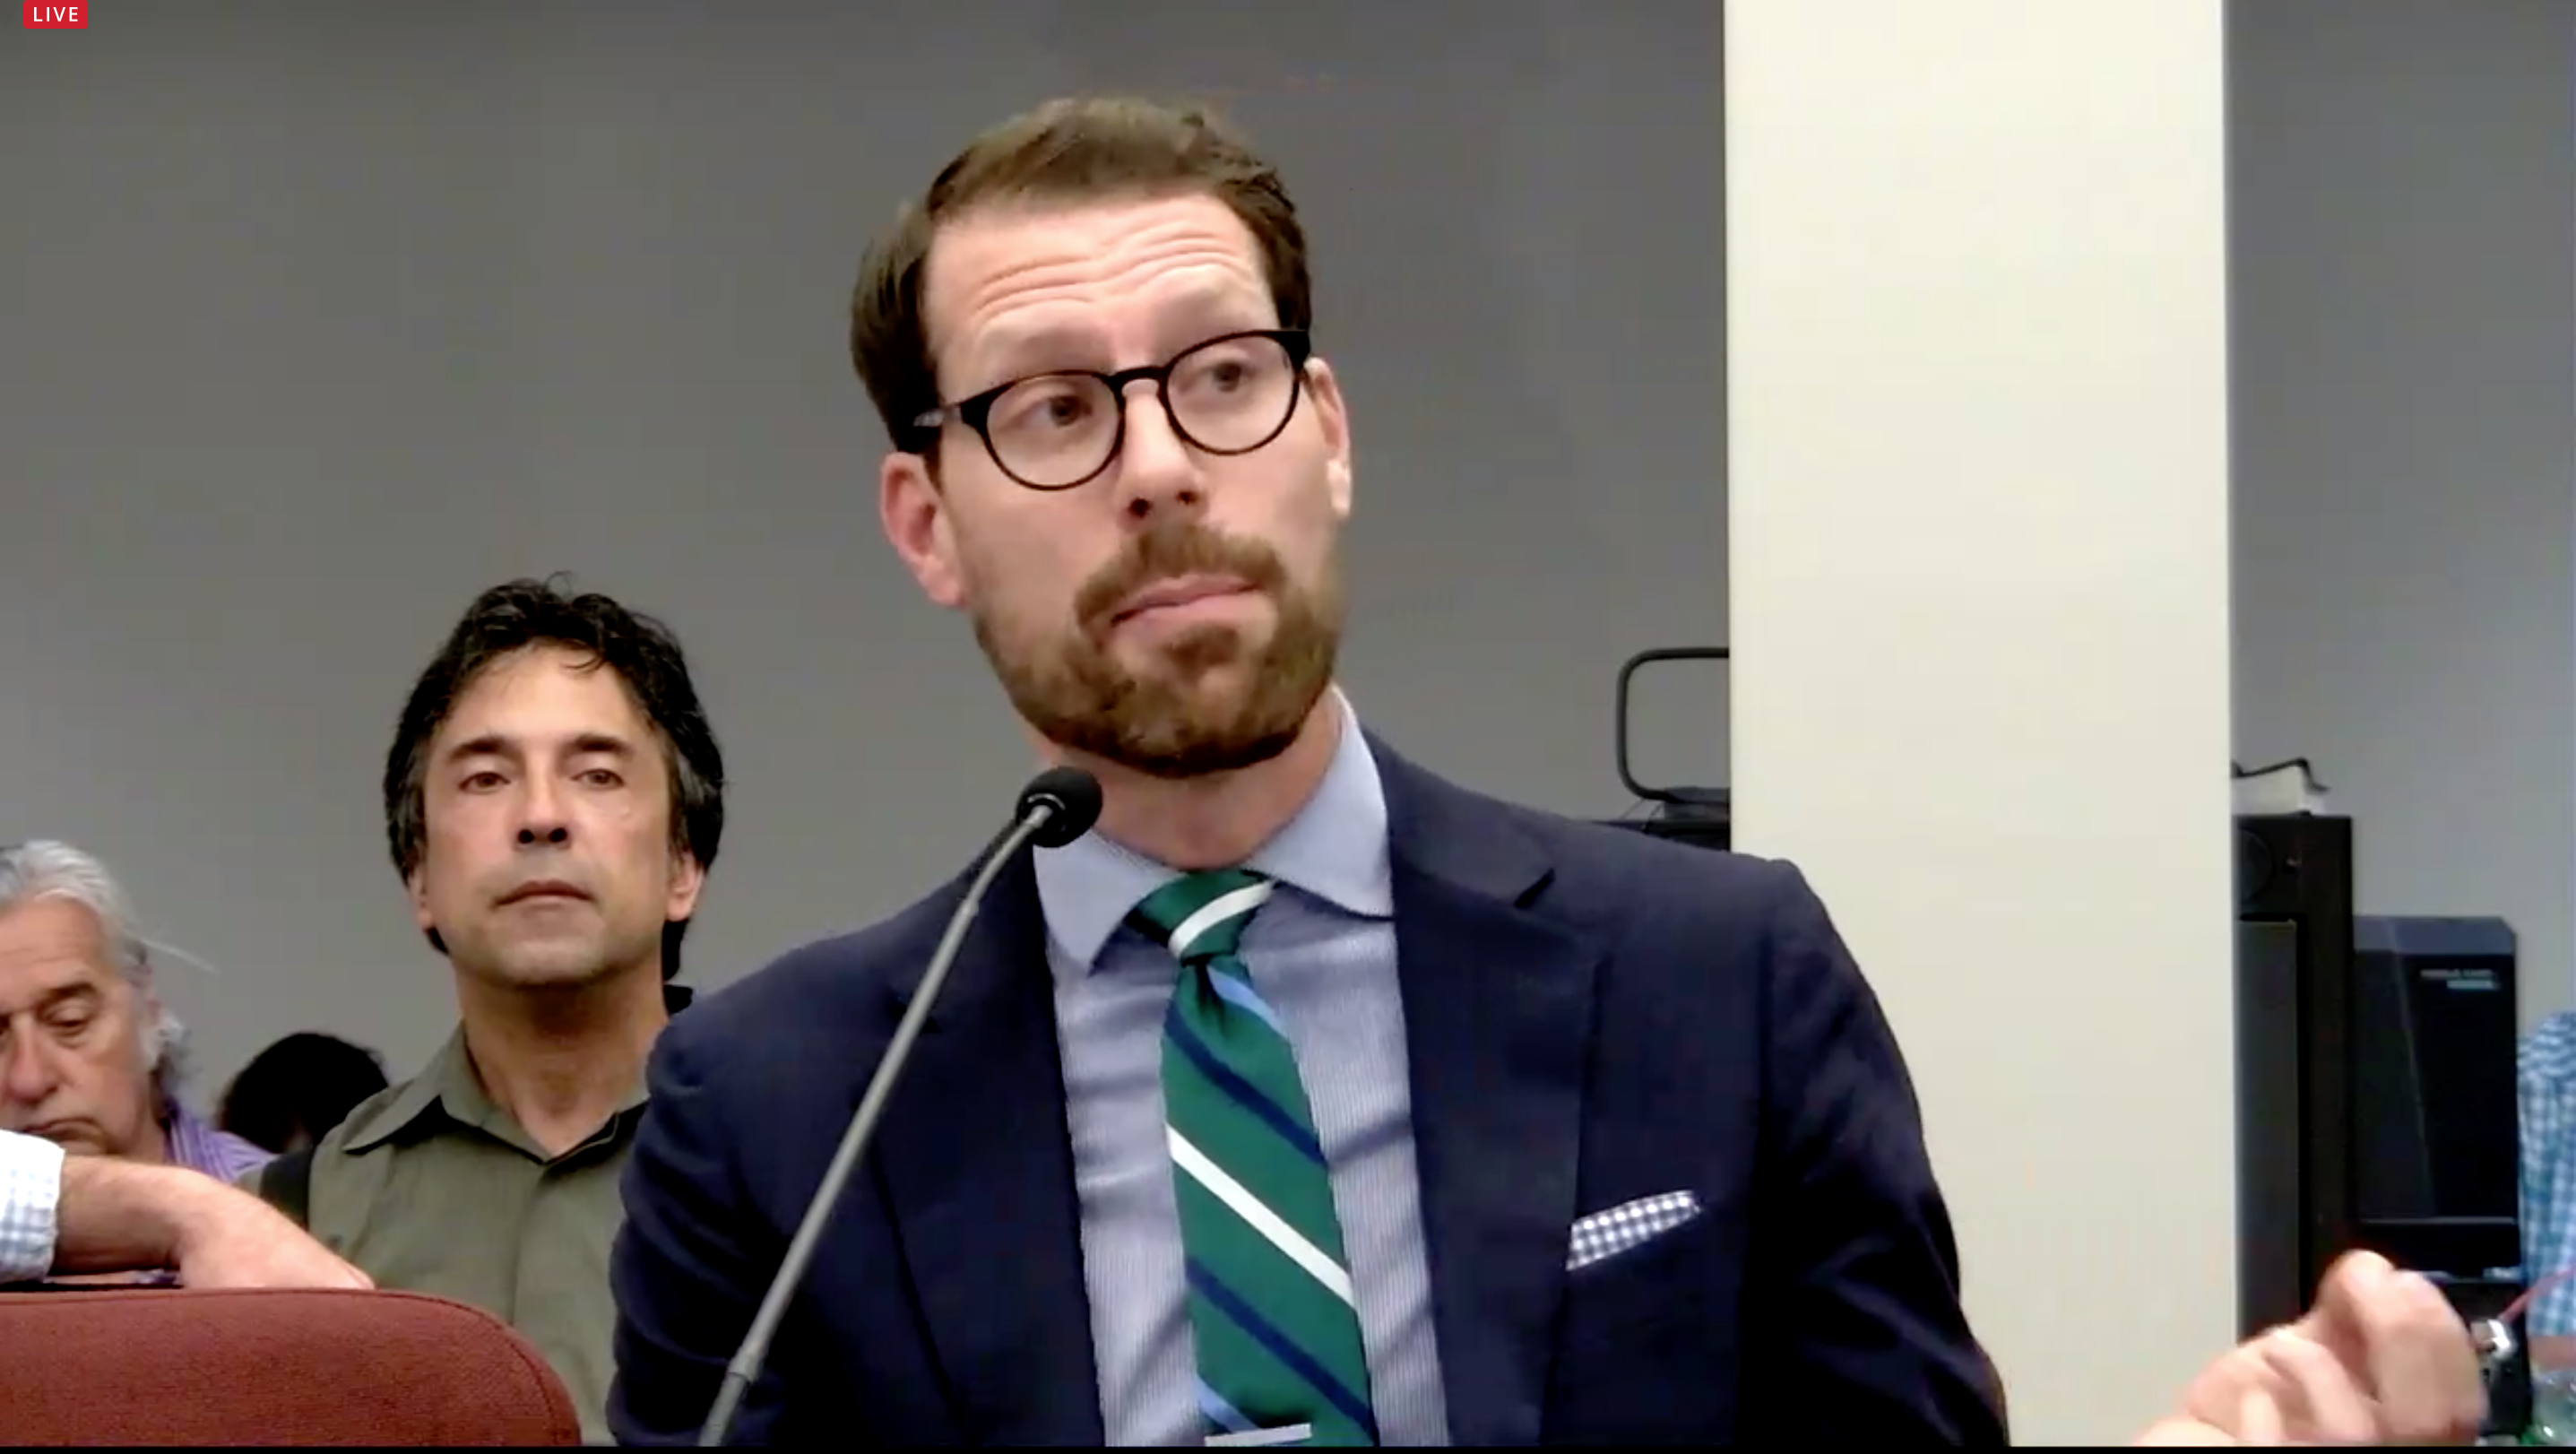 Allegheny County Economic Development Director Lance Chimka said a new fee to cover the cost of demolishing blighted buildings has raised $2.1 million, and he has $7.6 million in applications for the funds, at a June 3, 2021 hearing held by Republican state legislators in Brackenridge. (Screenshot)